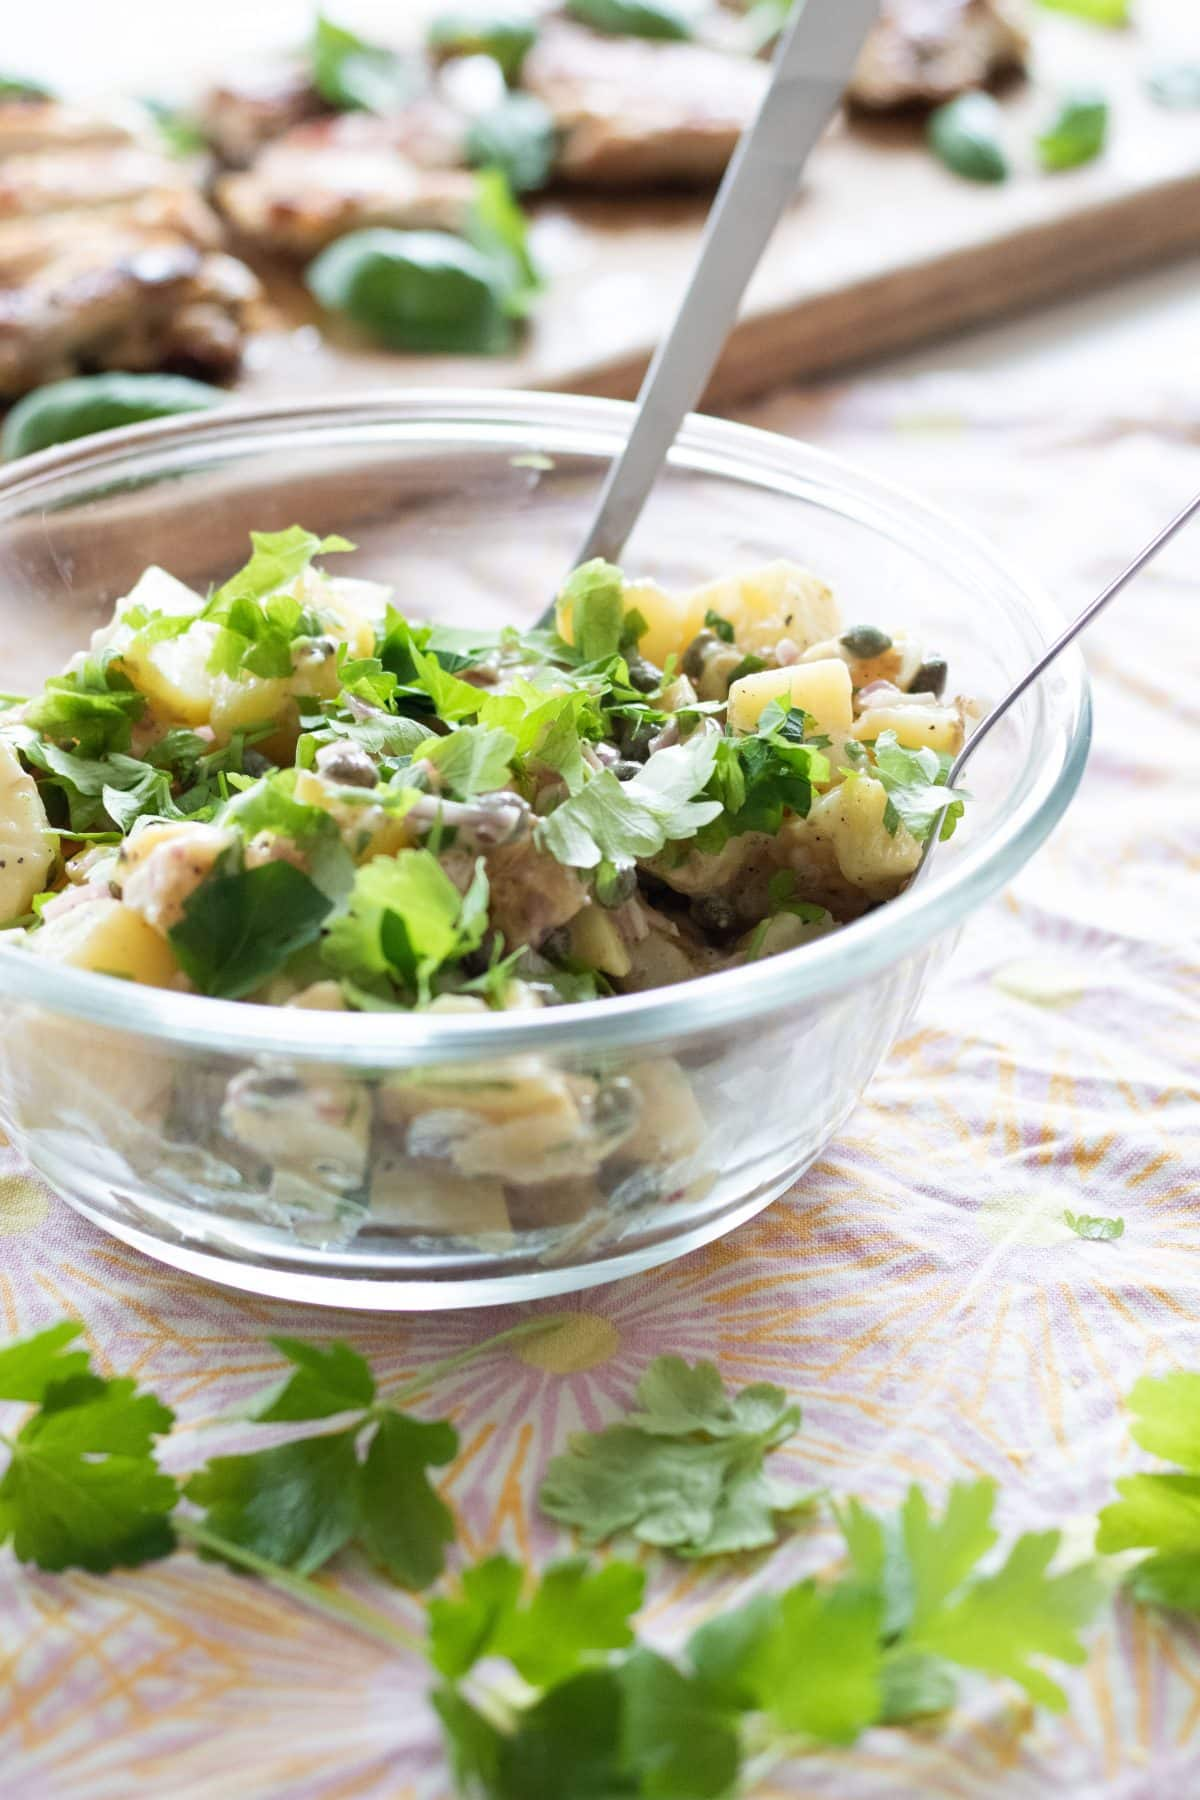 side view of french potato salad with parsley and capers